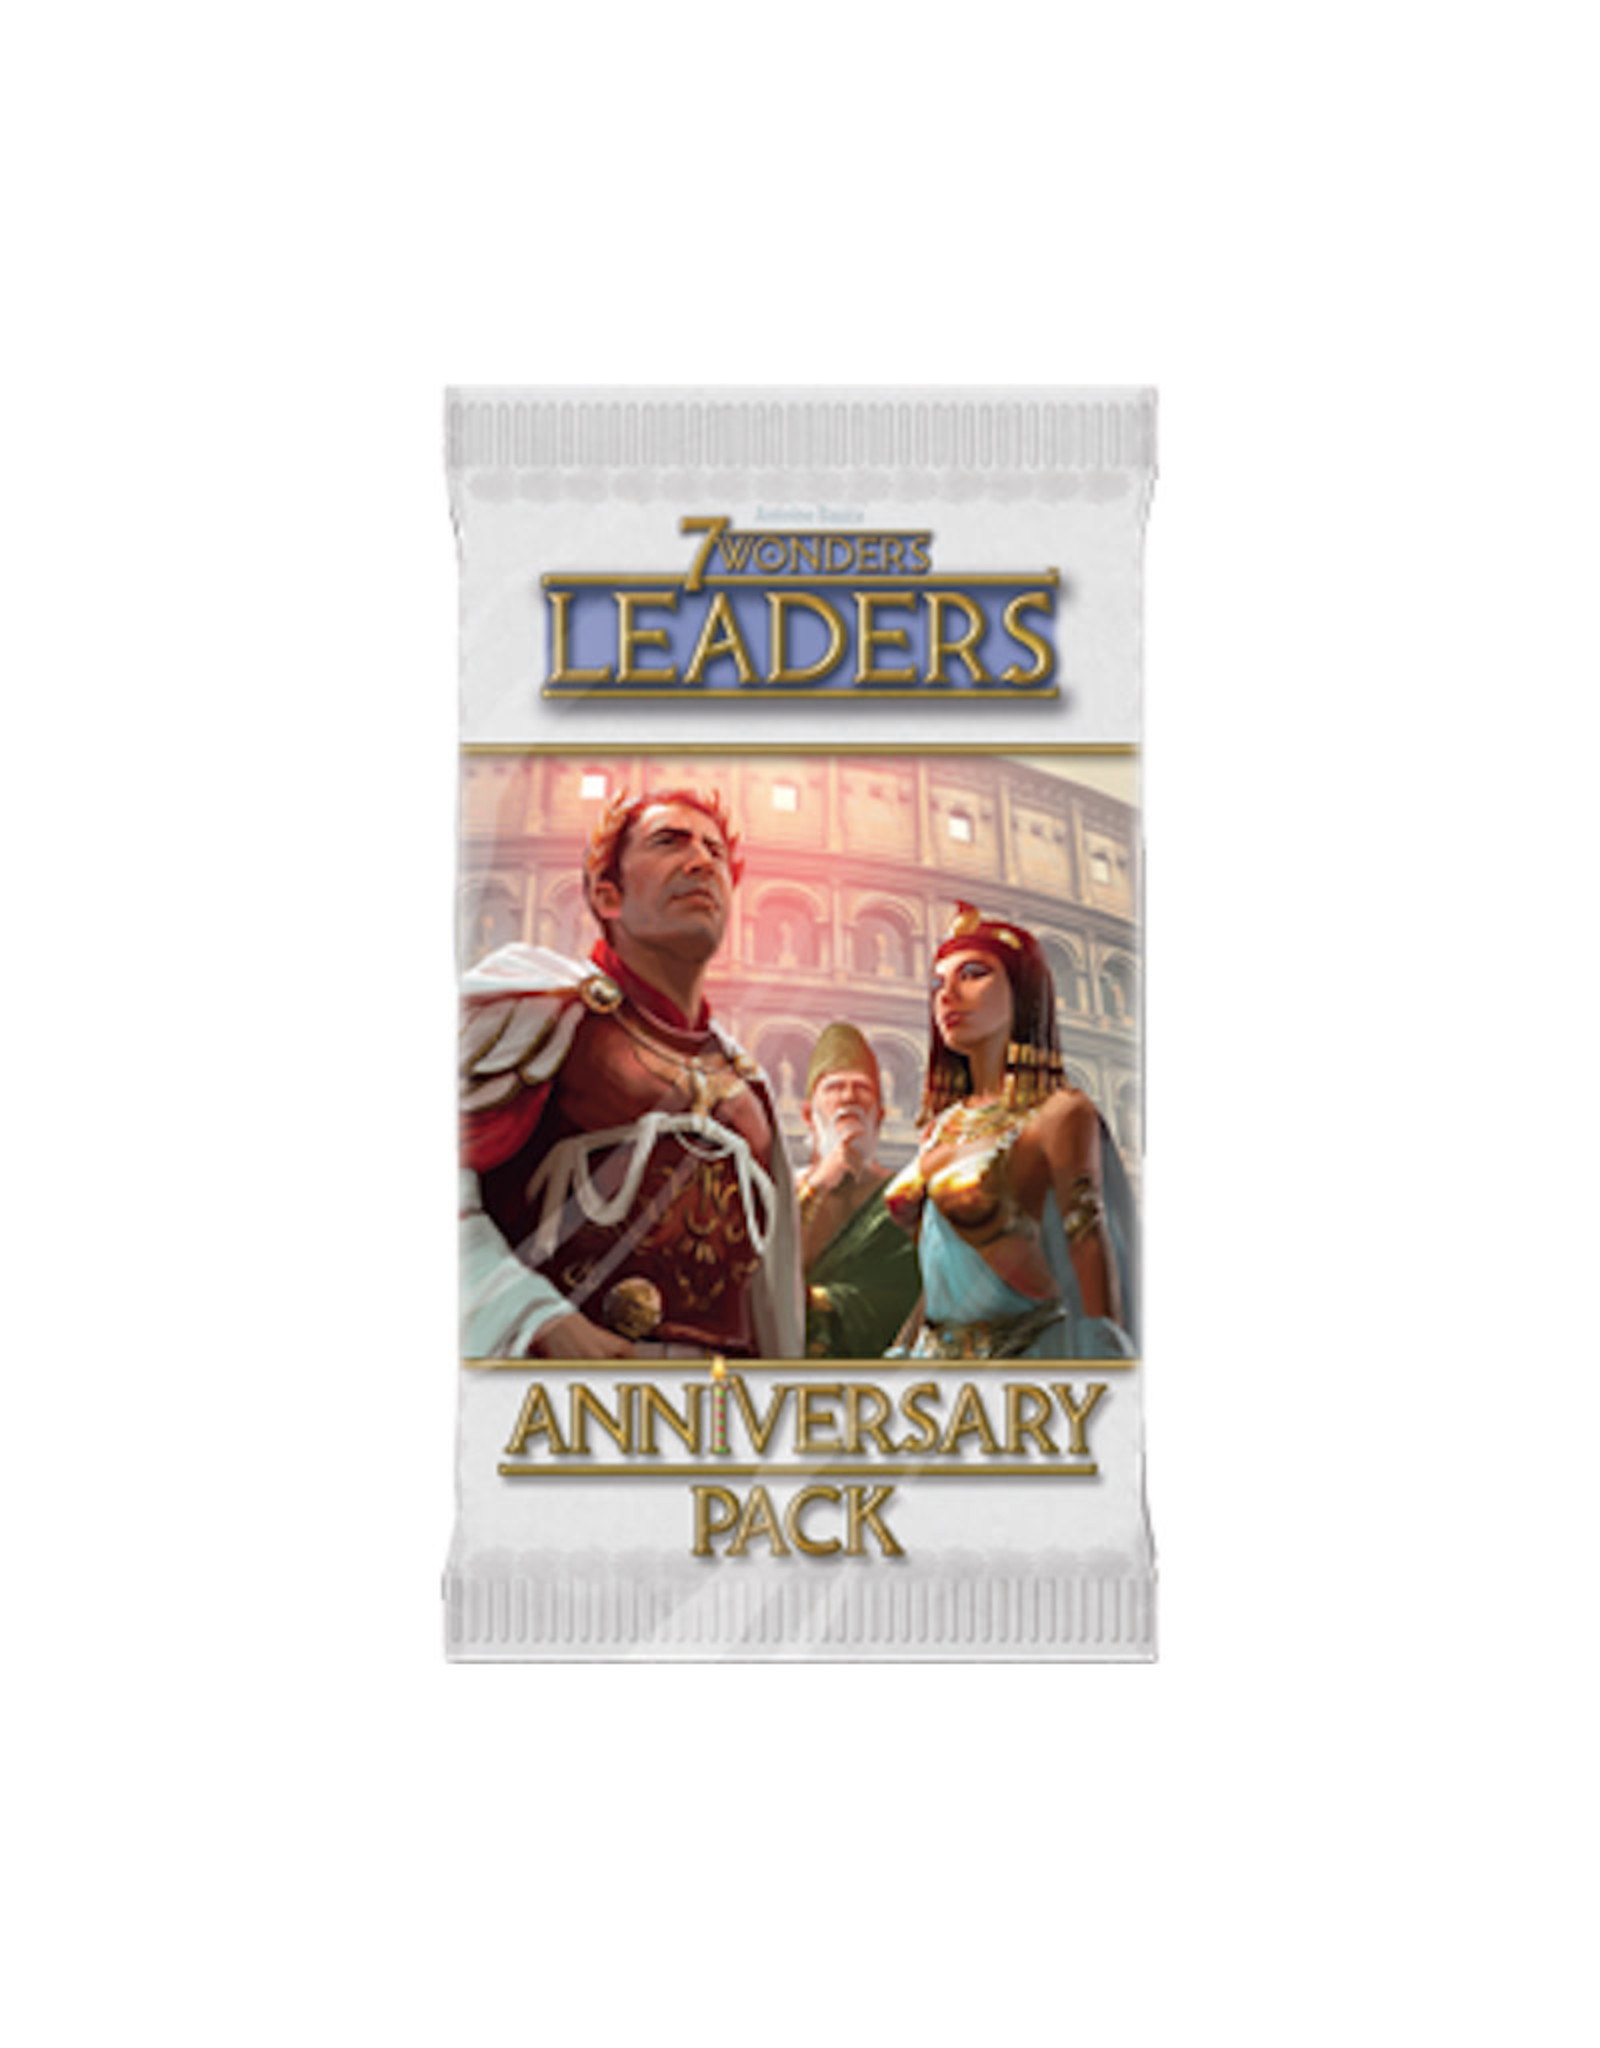 7 Wonders Leaders Anniversary Pack Expansion (old Edition only)